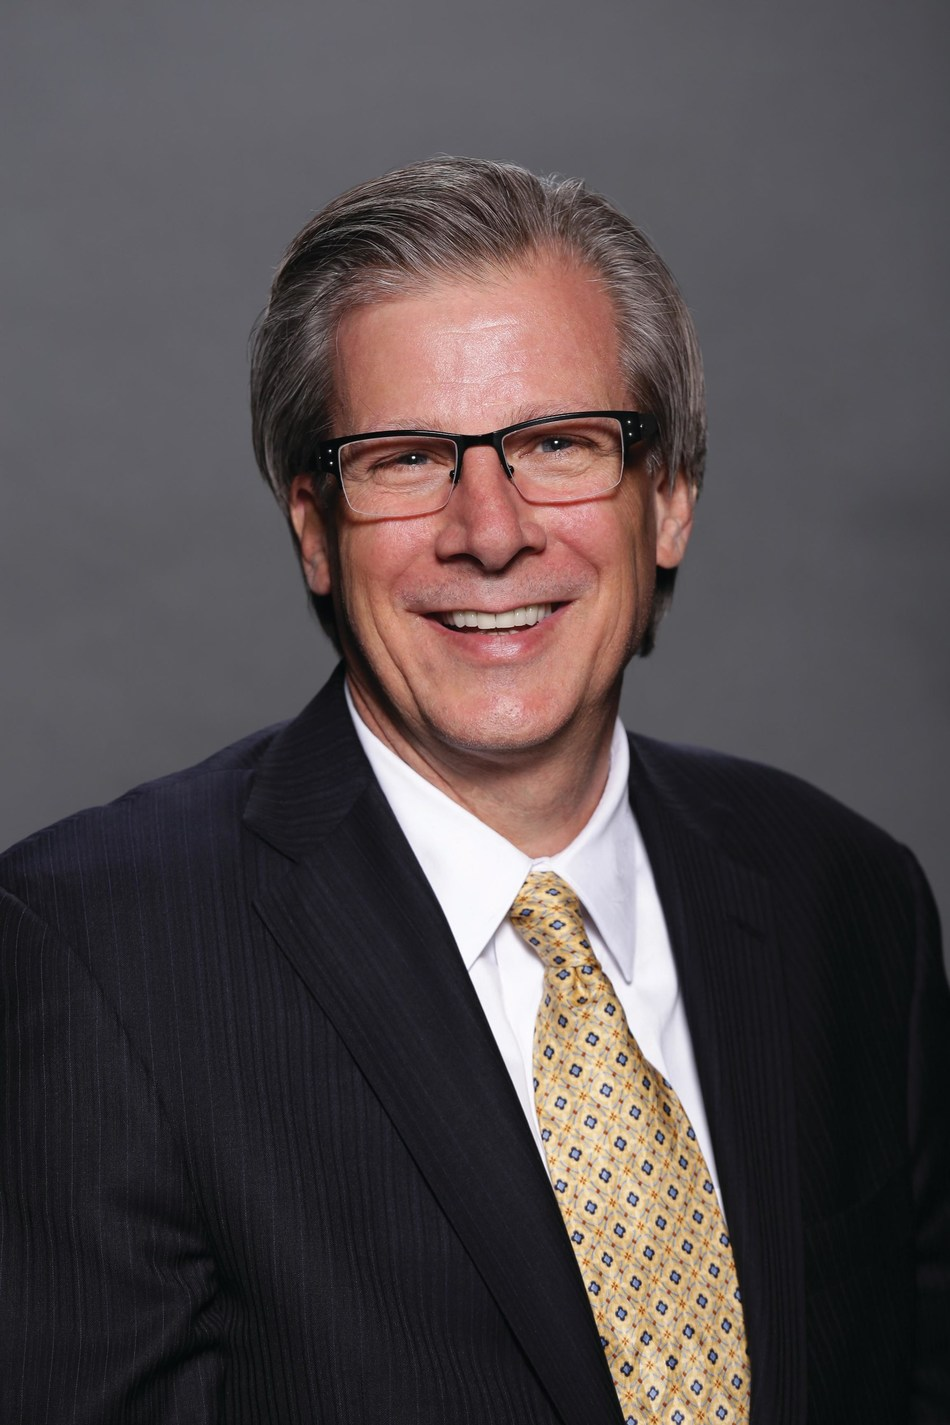 John Benson, co-founder and CEO of Verisys Corporation